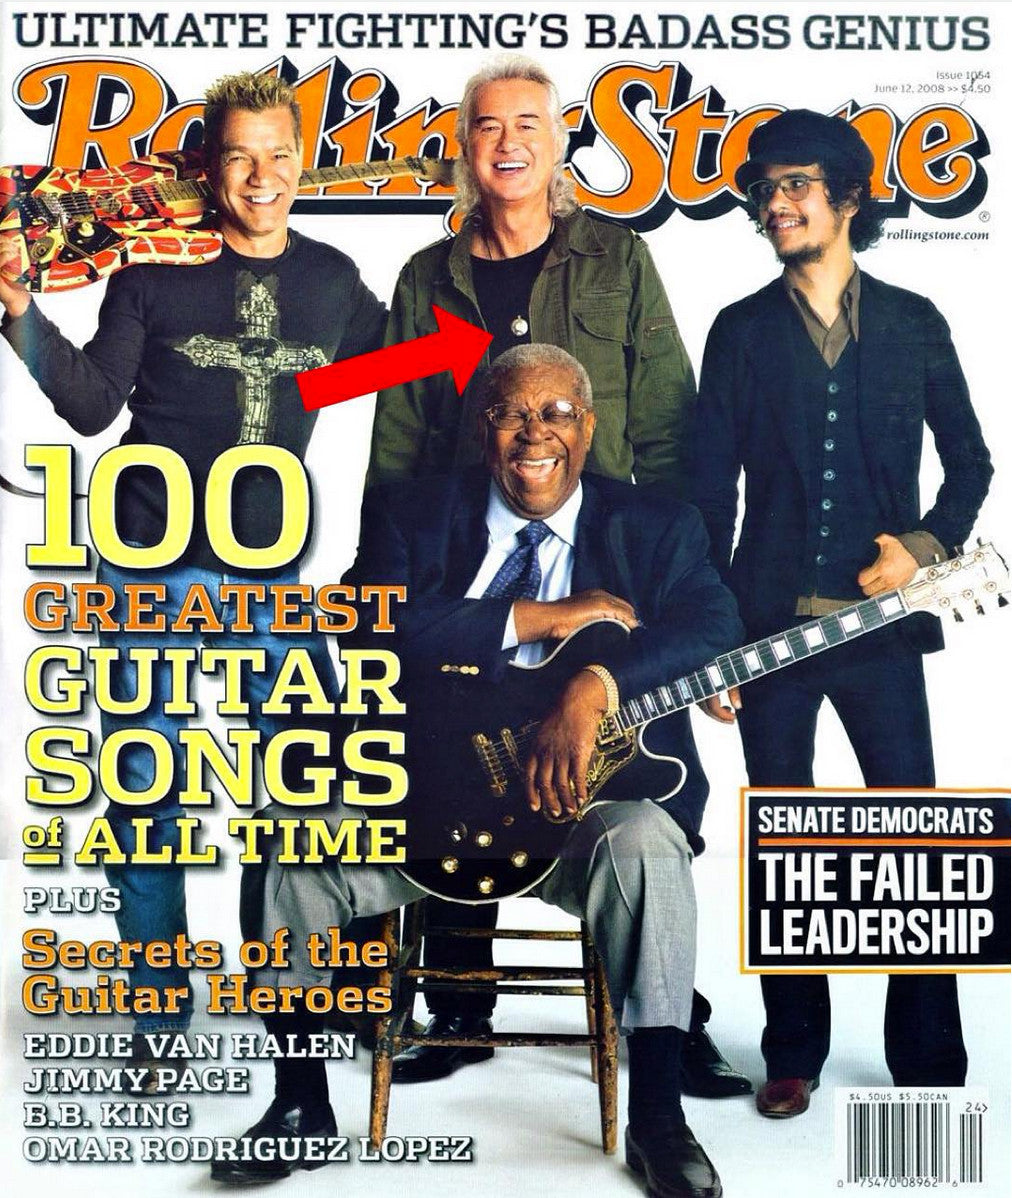 Spotted! Rolling Stone Magazine Cover - Jimmy Page wearing Q-Link